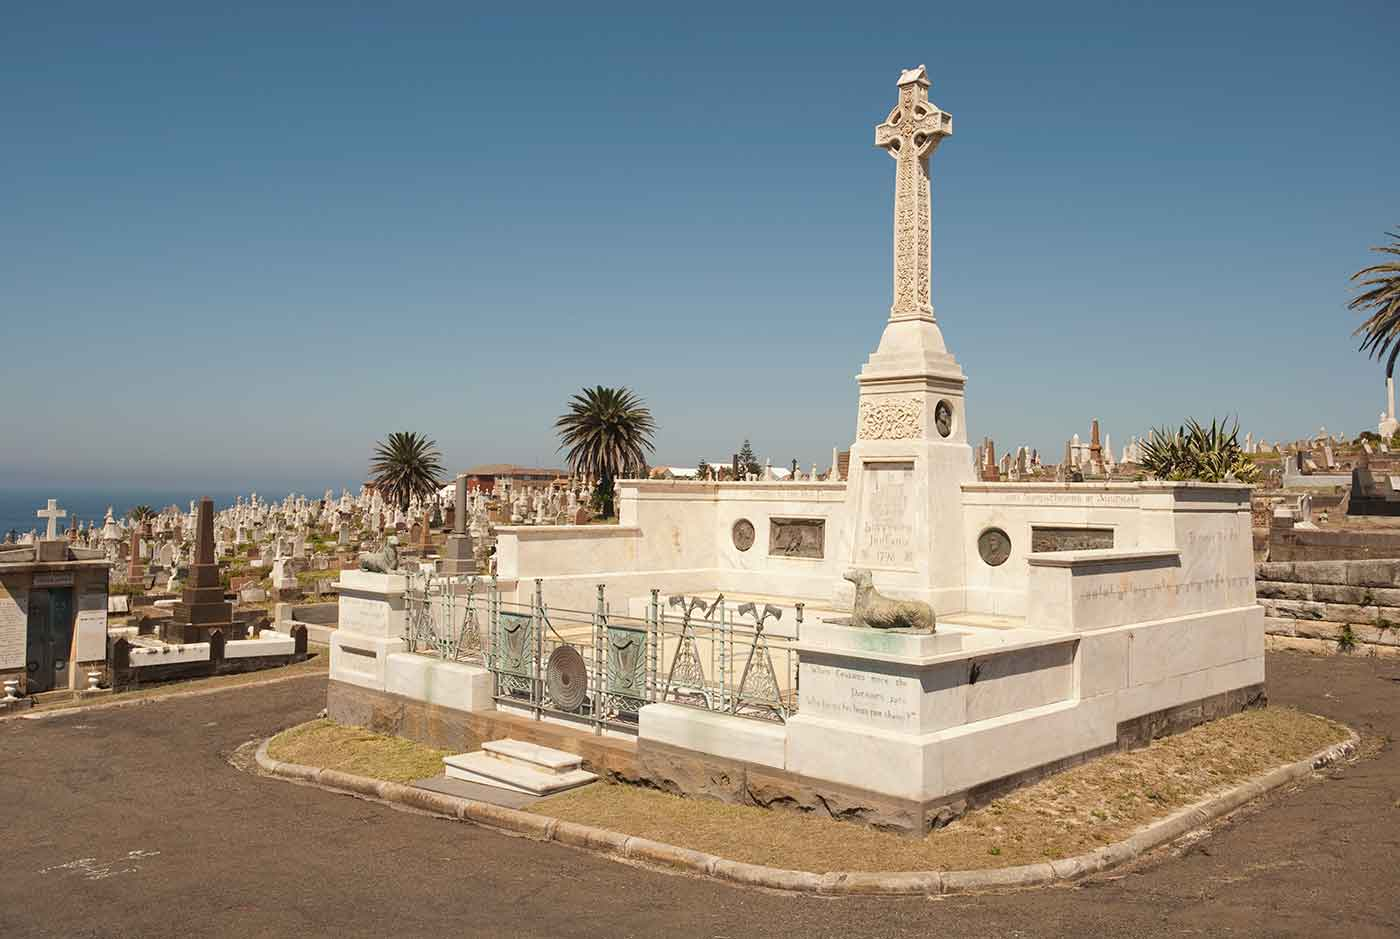 View of a cemetery overlooking the sea. - click to view larger image